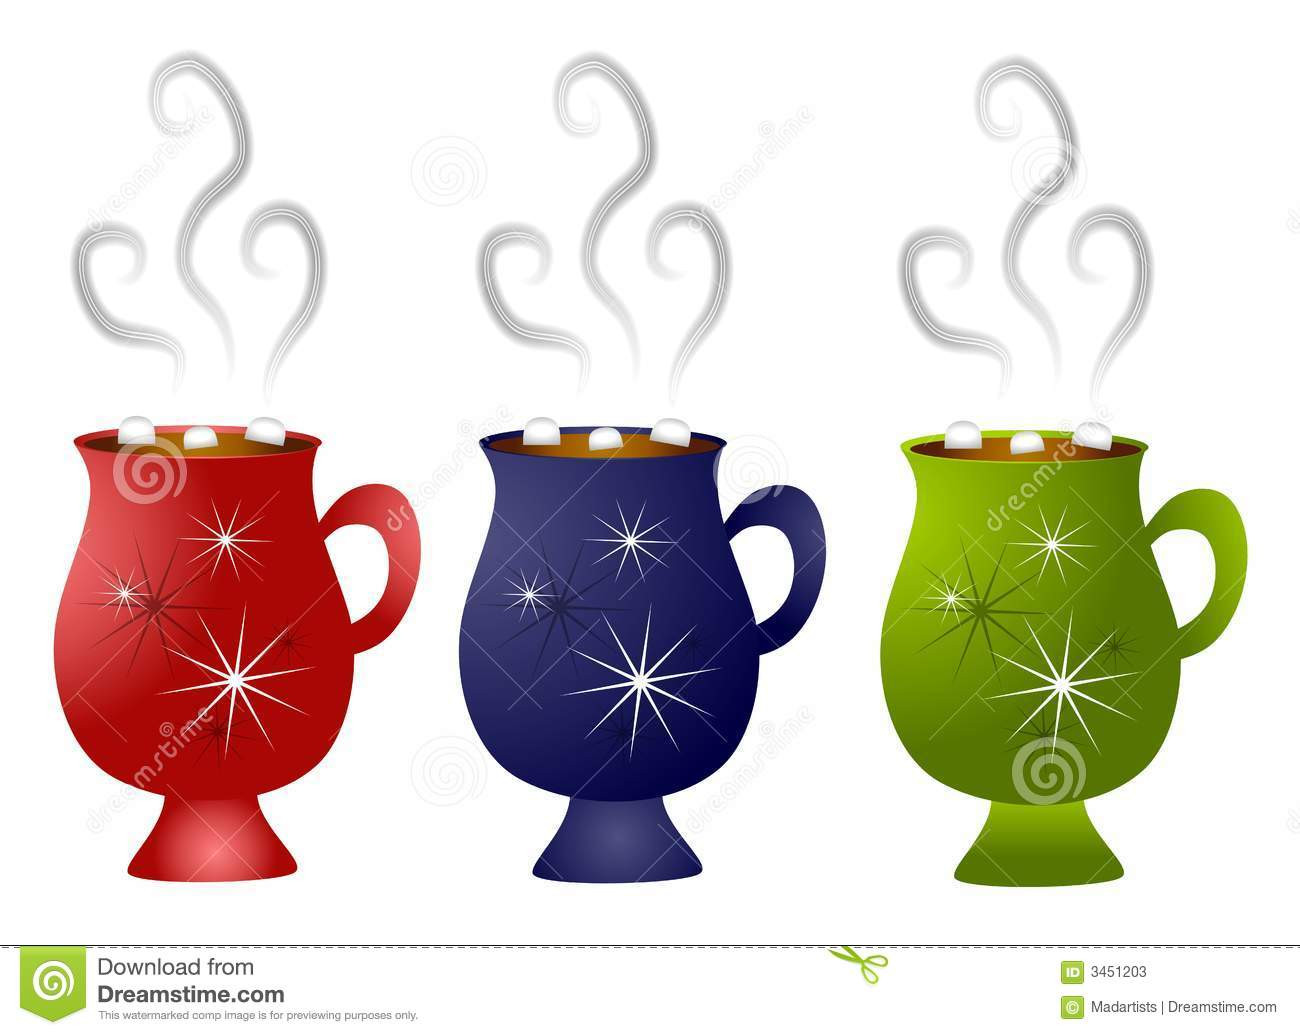 Hot Chocolate Clipart  Christmas Hot Chocolate Mugs Stock Illustration